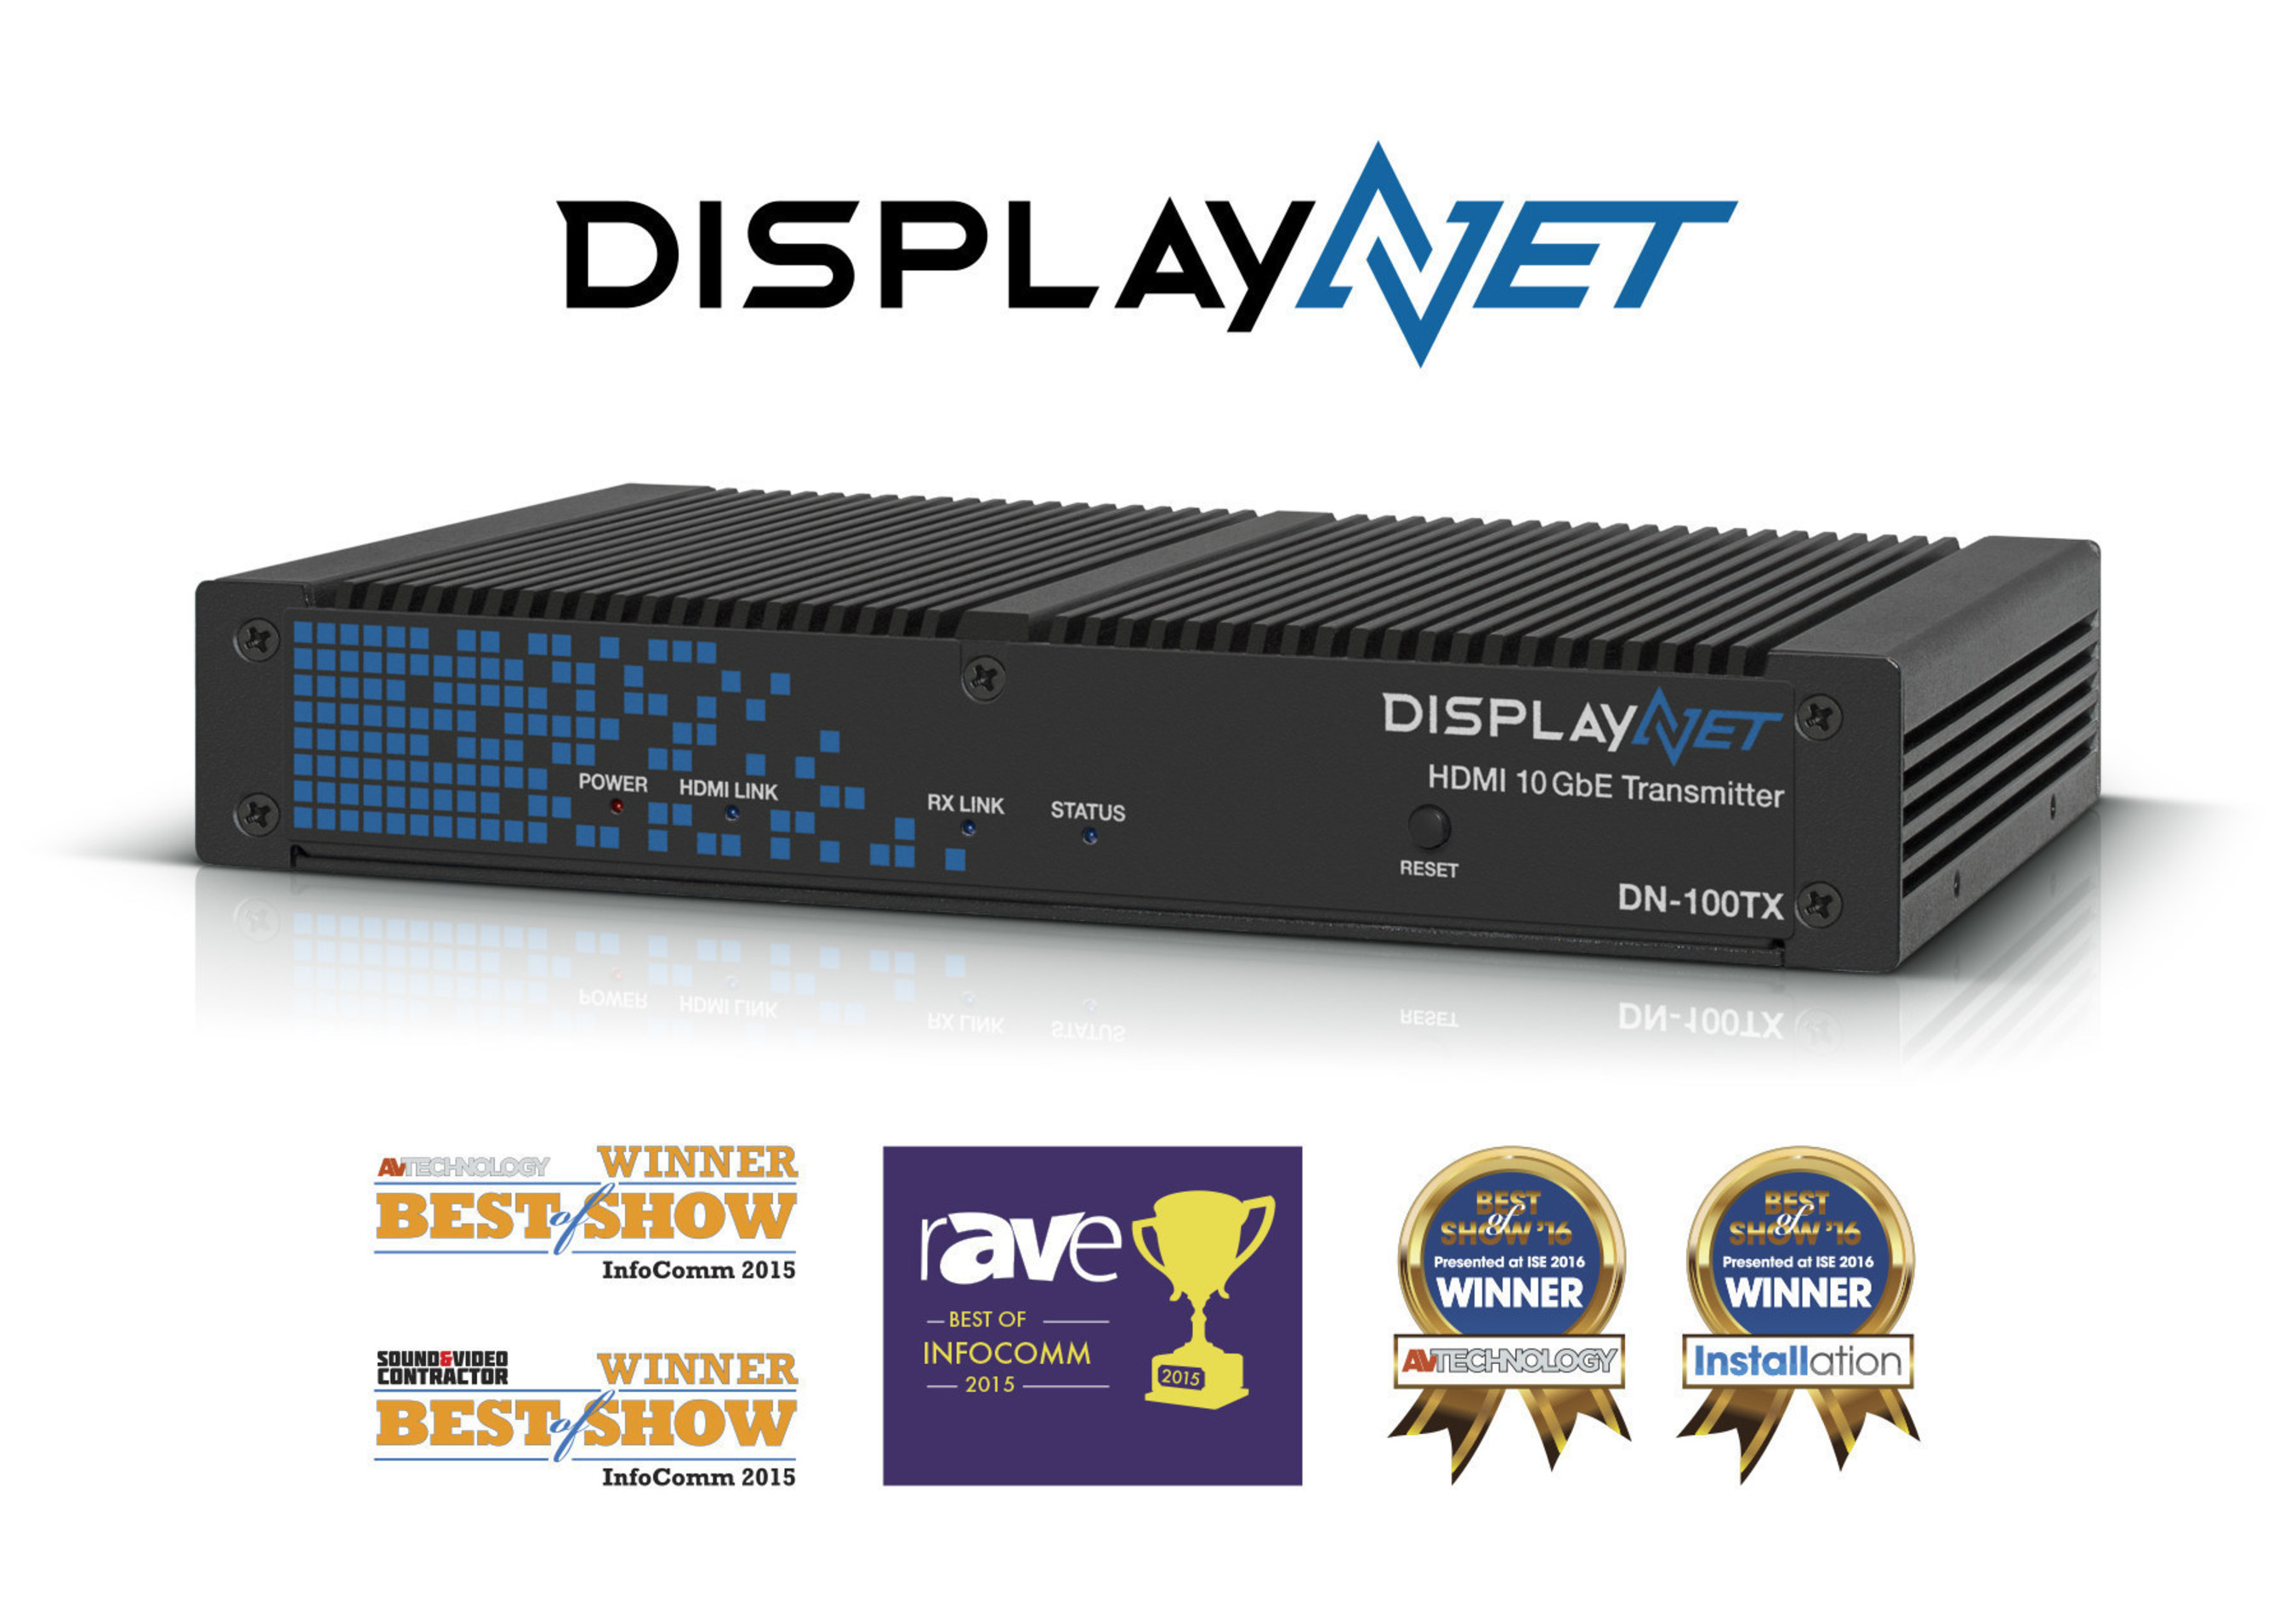 DVIGear's DisplayNet™ Wins Fifth Best of Show Award